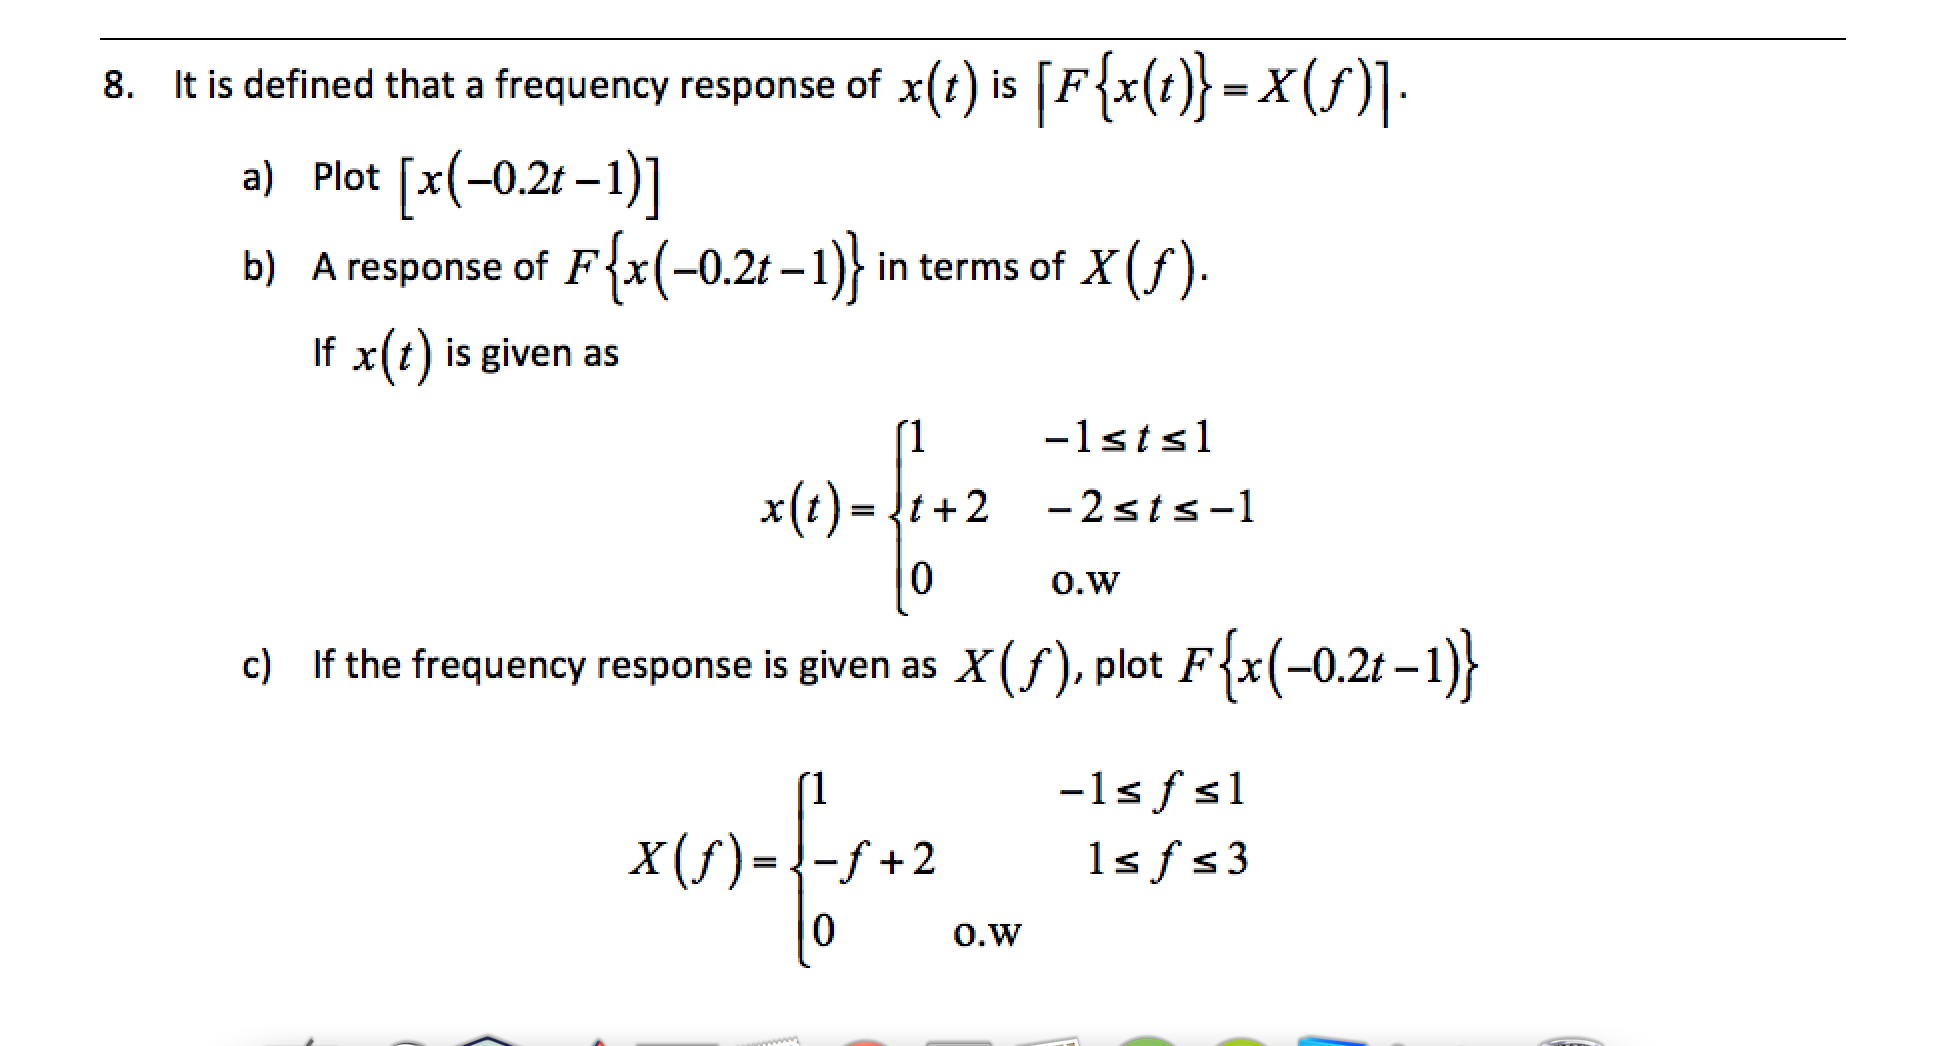 It is defined that a frequency response of x(t) is